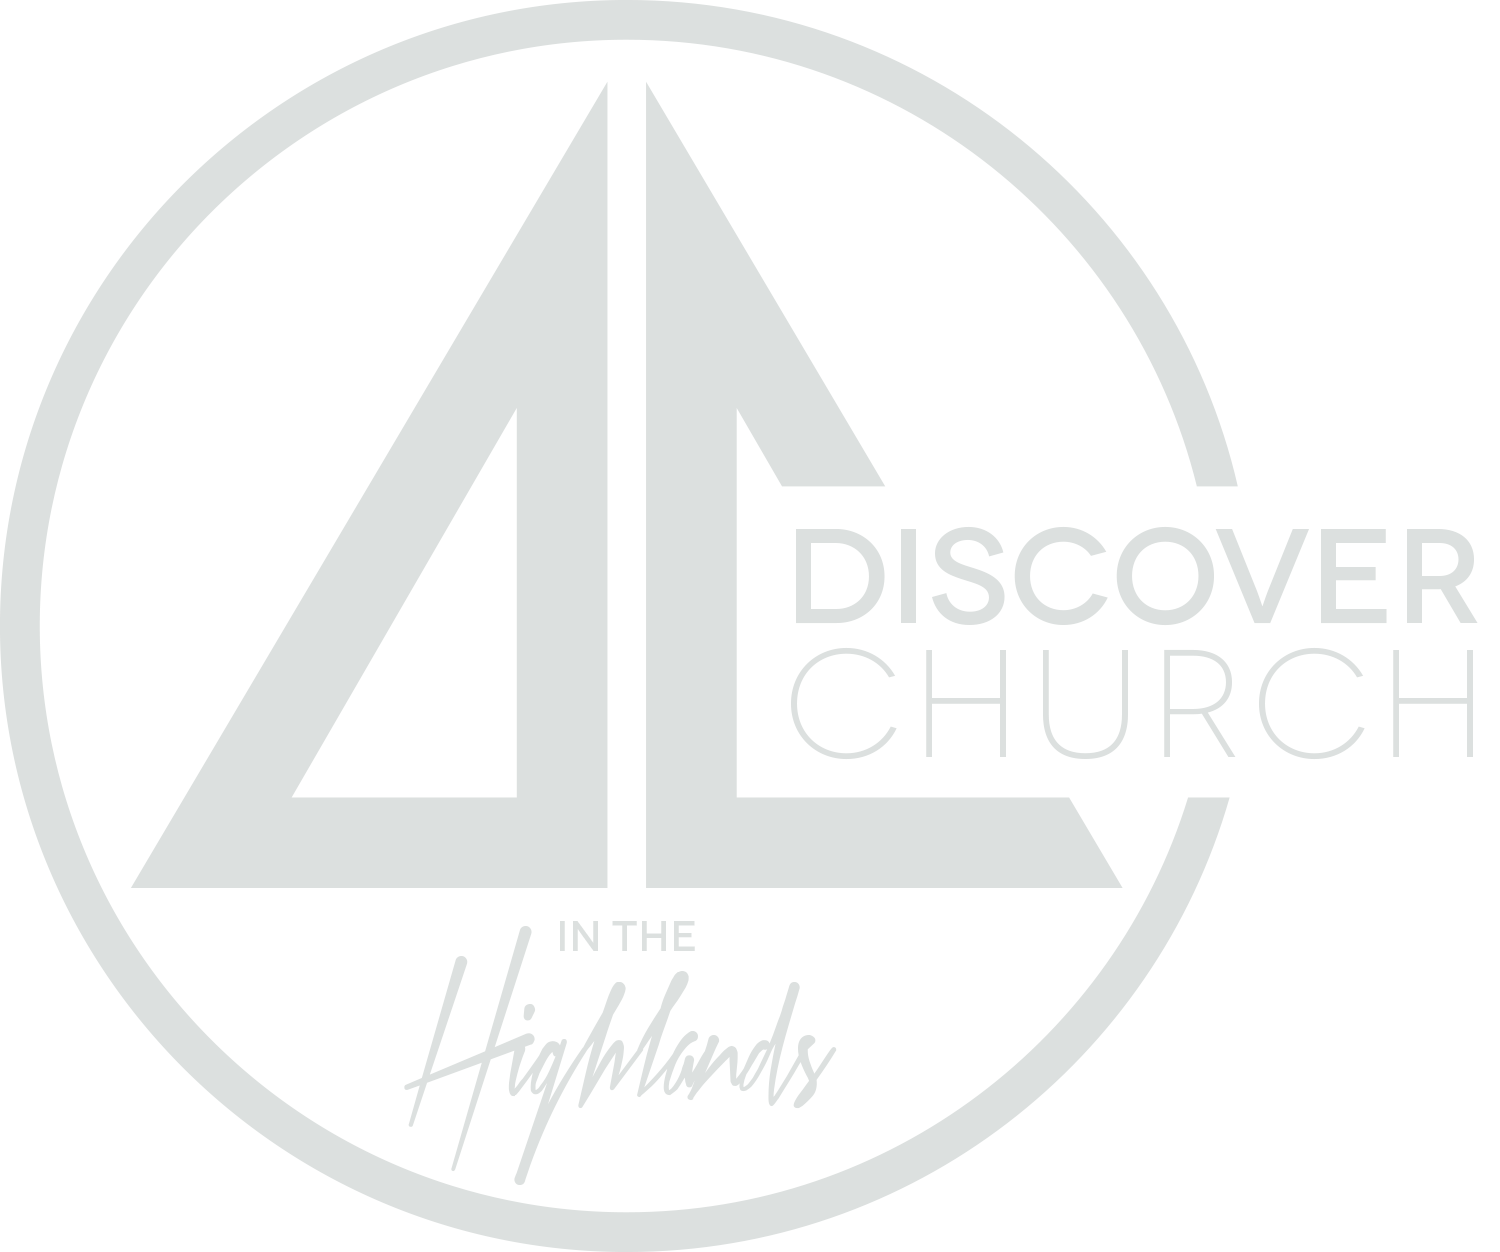 Discover Church in the Highlands